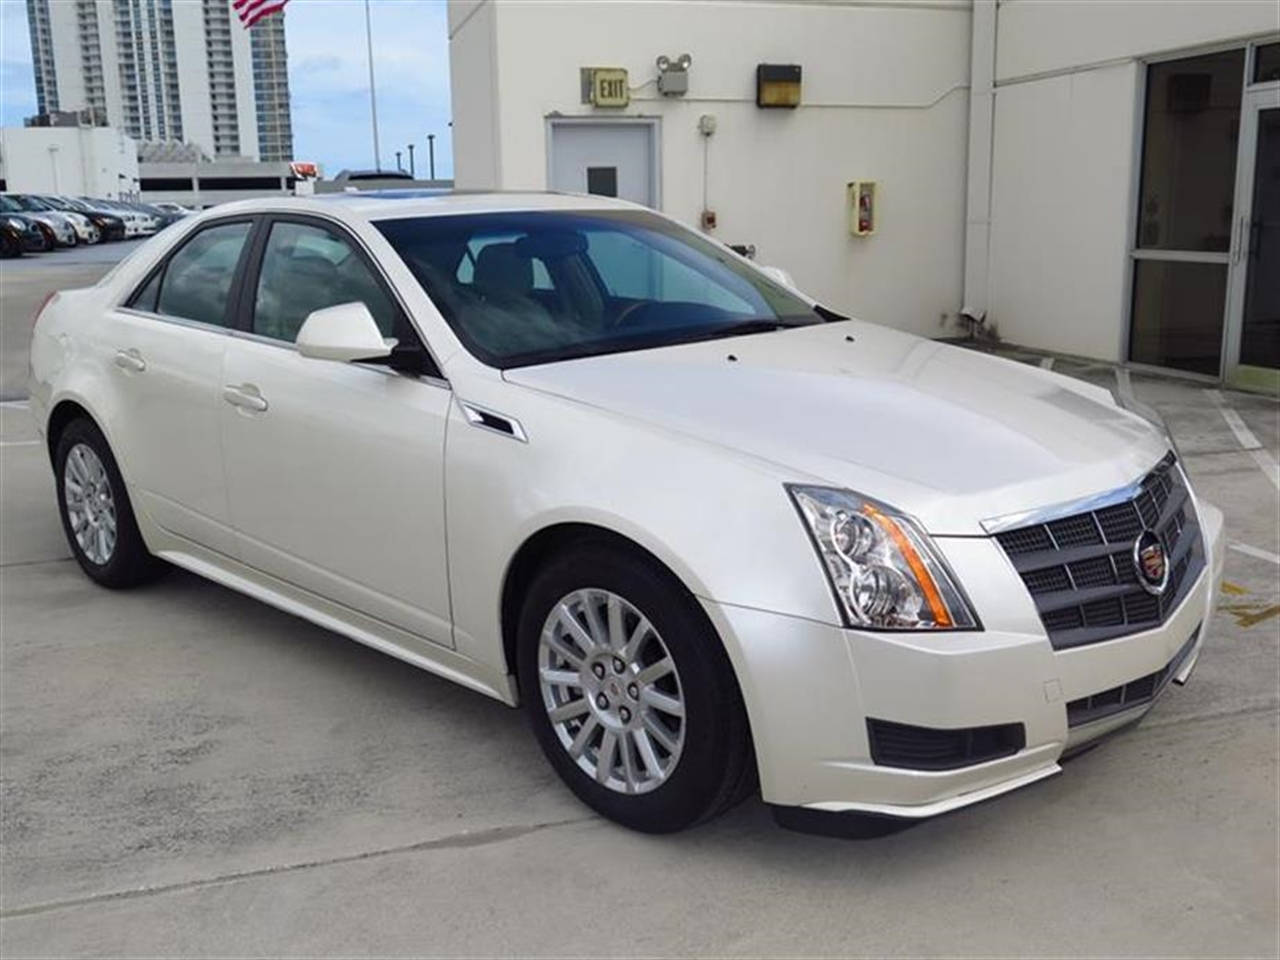 2011 CADILLAC CTS SEDAN 4dr Sdn 30L Luxury RWD 30179 miles Armrest front center rear center wit